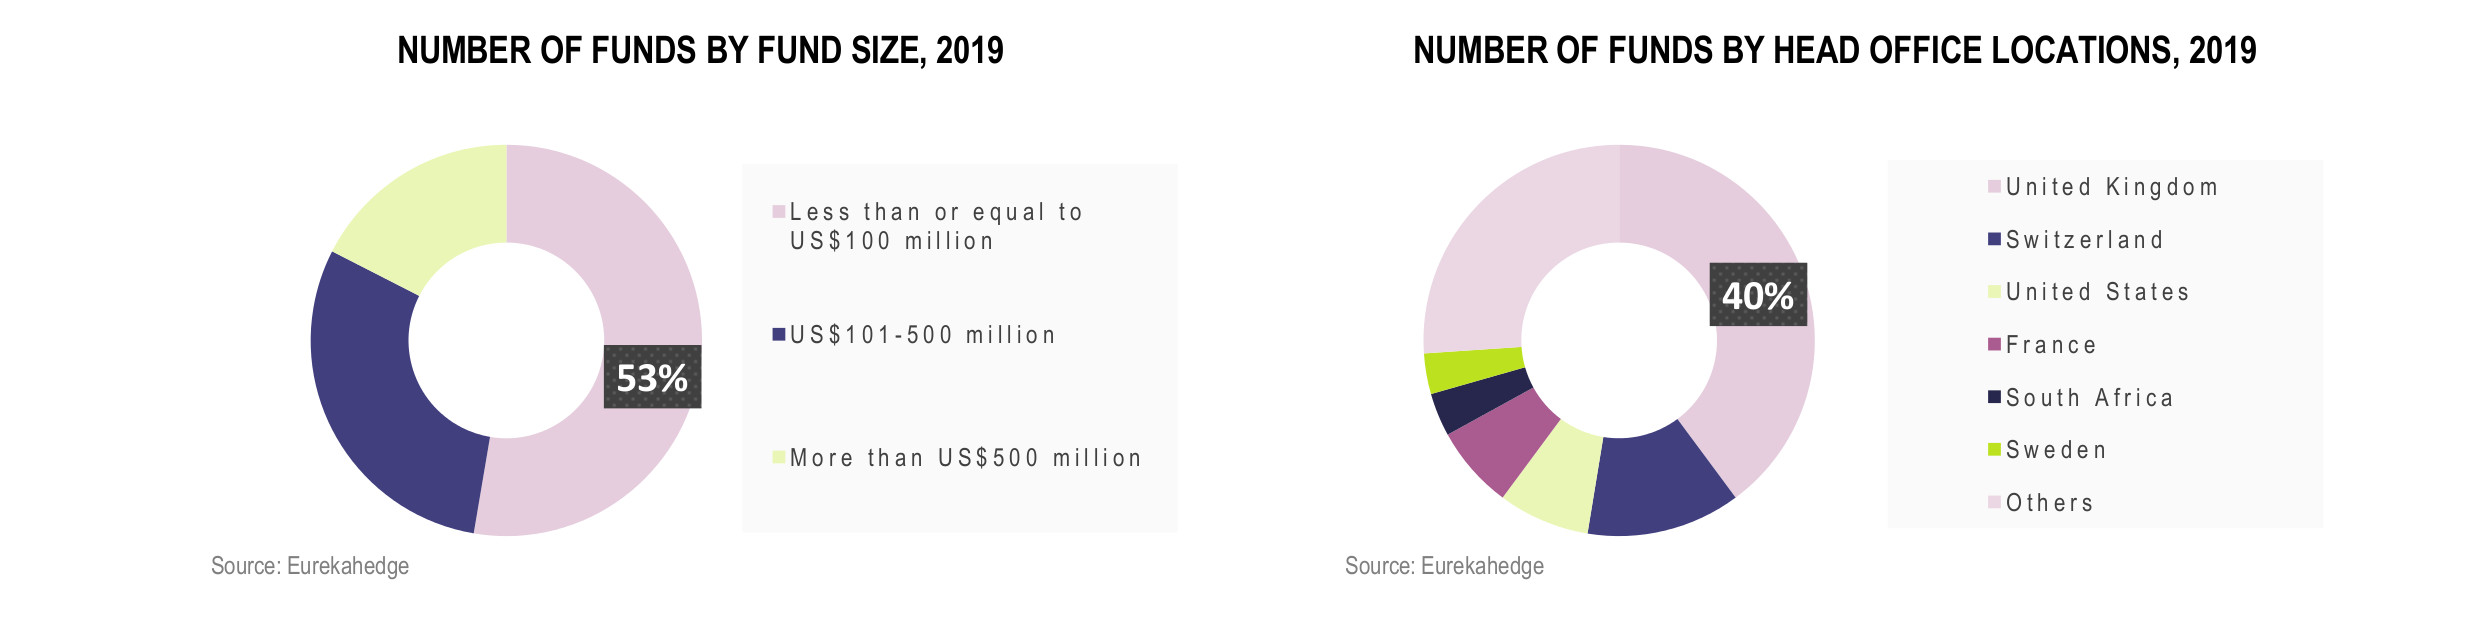 European Hedge Funds Infographic July 2019 - funds by fund size and head office location